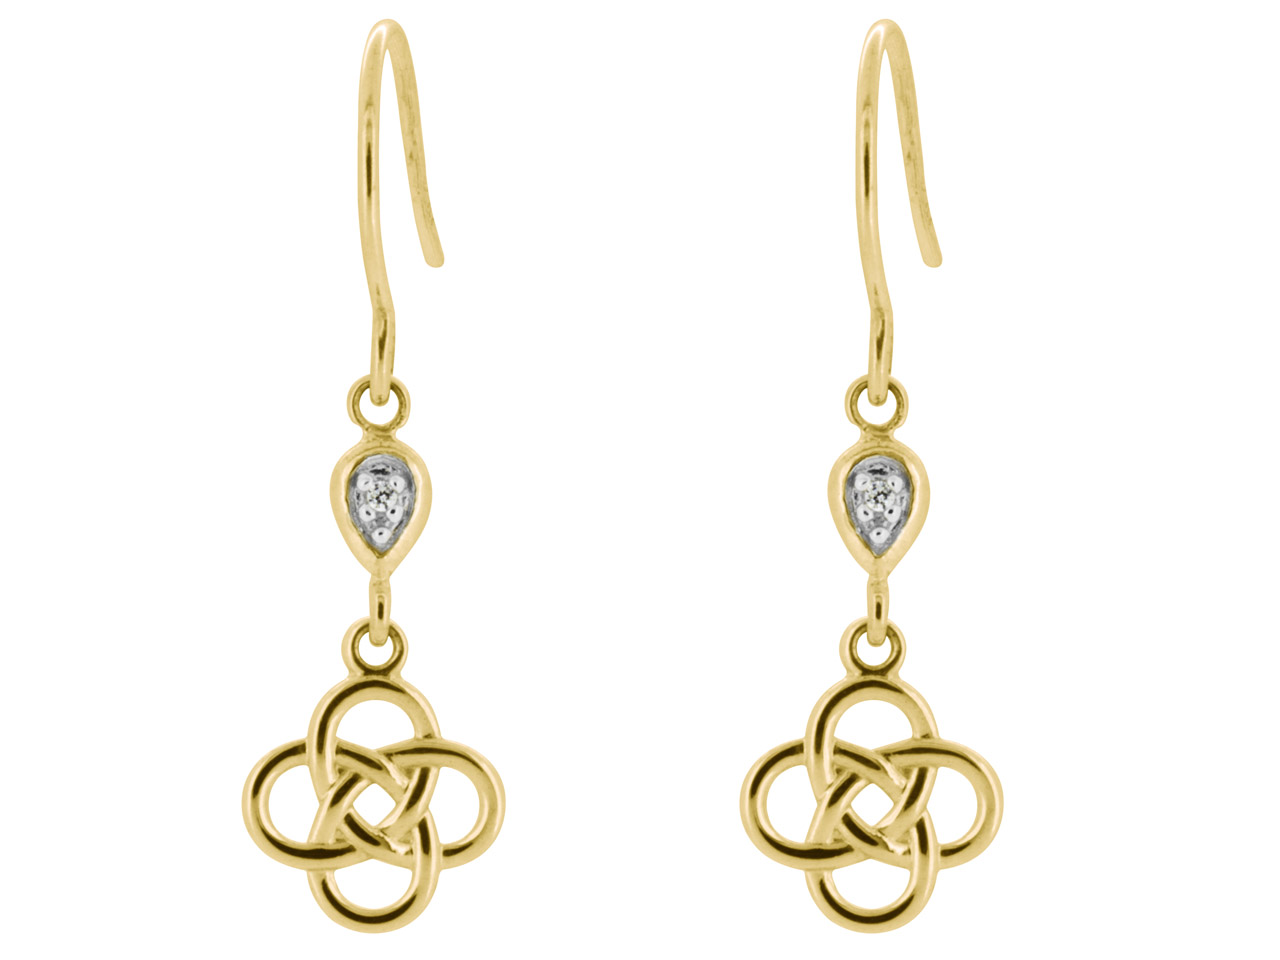 9ct Yellow Celtic Knot Earrings Set With 2 1mm Cz's